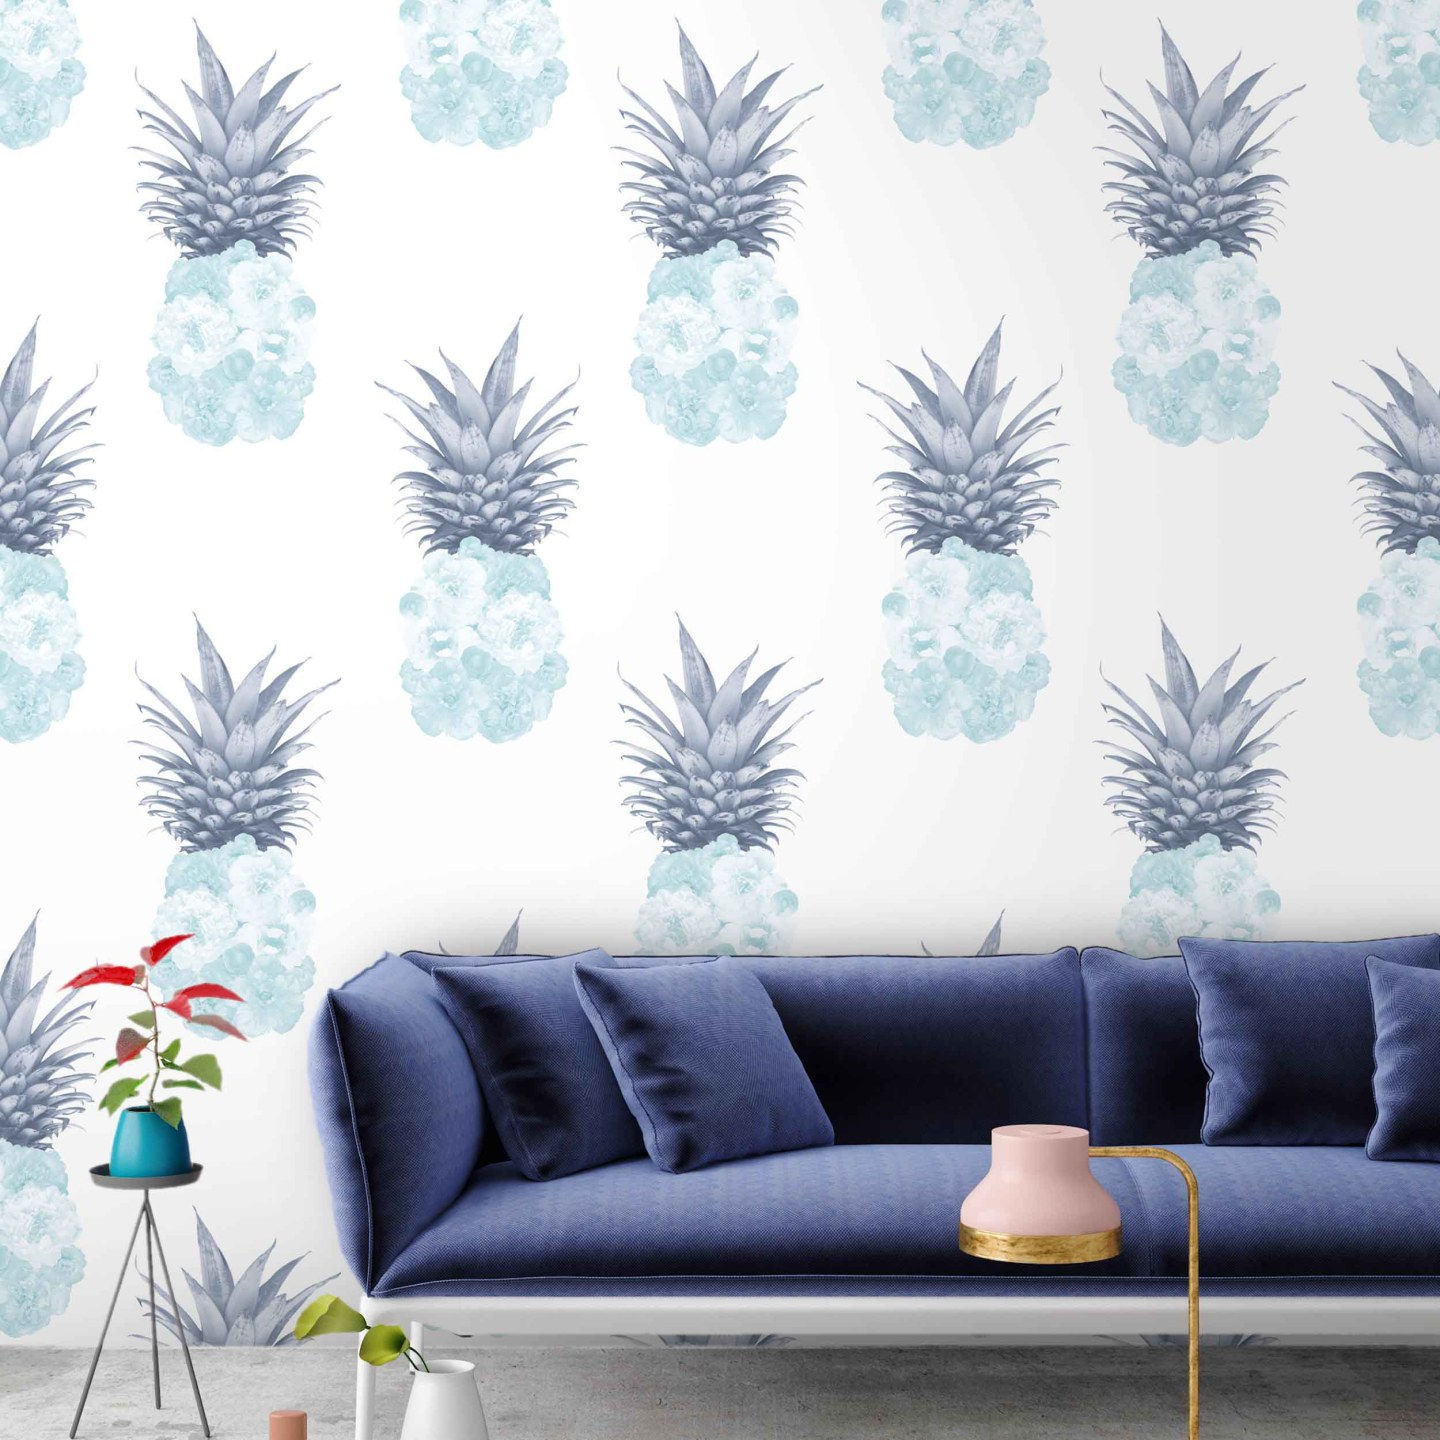 Woodchip-and-Magnolia-Ludic-Duck-Egg-Navy-Pineapple-Wallpaper-1753415-1-1440x1440 Pineapple Decor: Tips for Decorating Your Home with Southern Hospitality